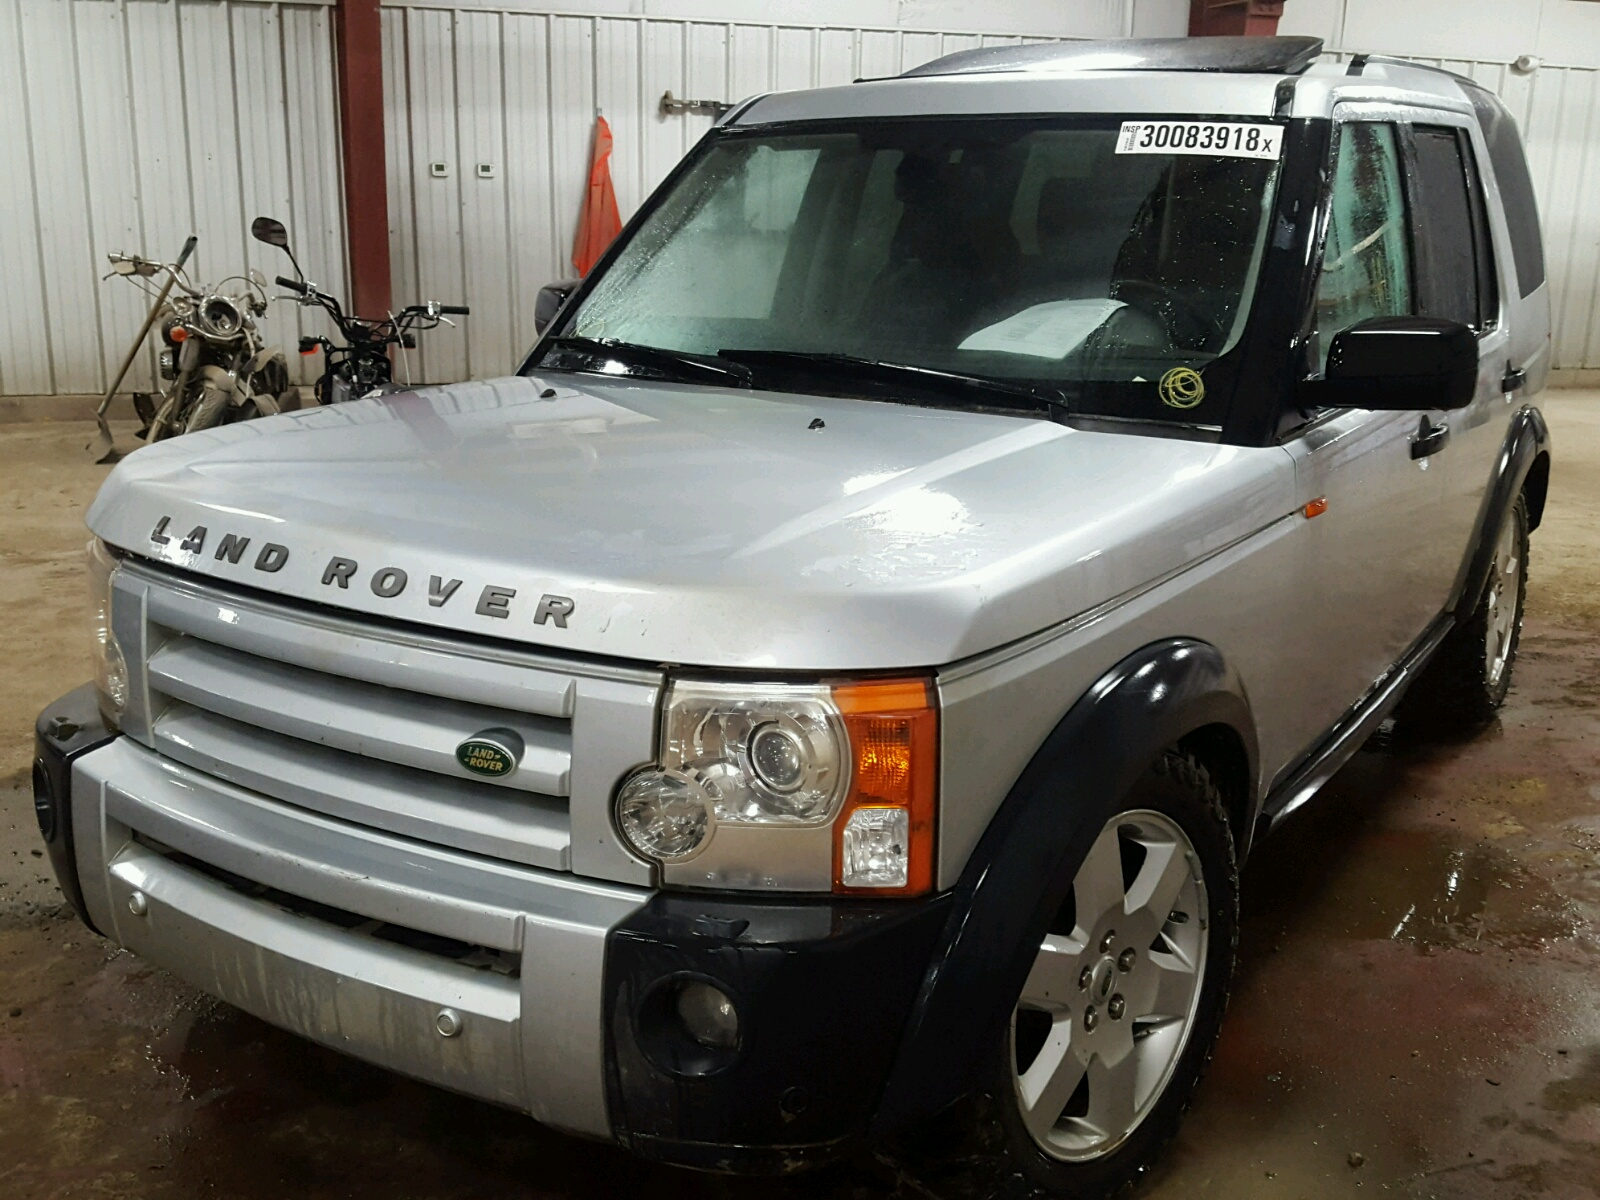 title silver auctions in auto en landrover salvage carfinder copart angle san tx antonio land on sale hse online for view vehicle lot rover